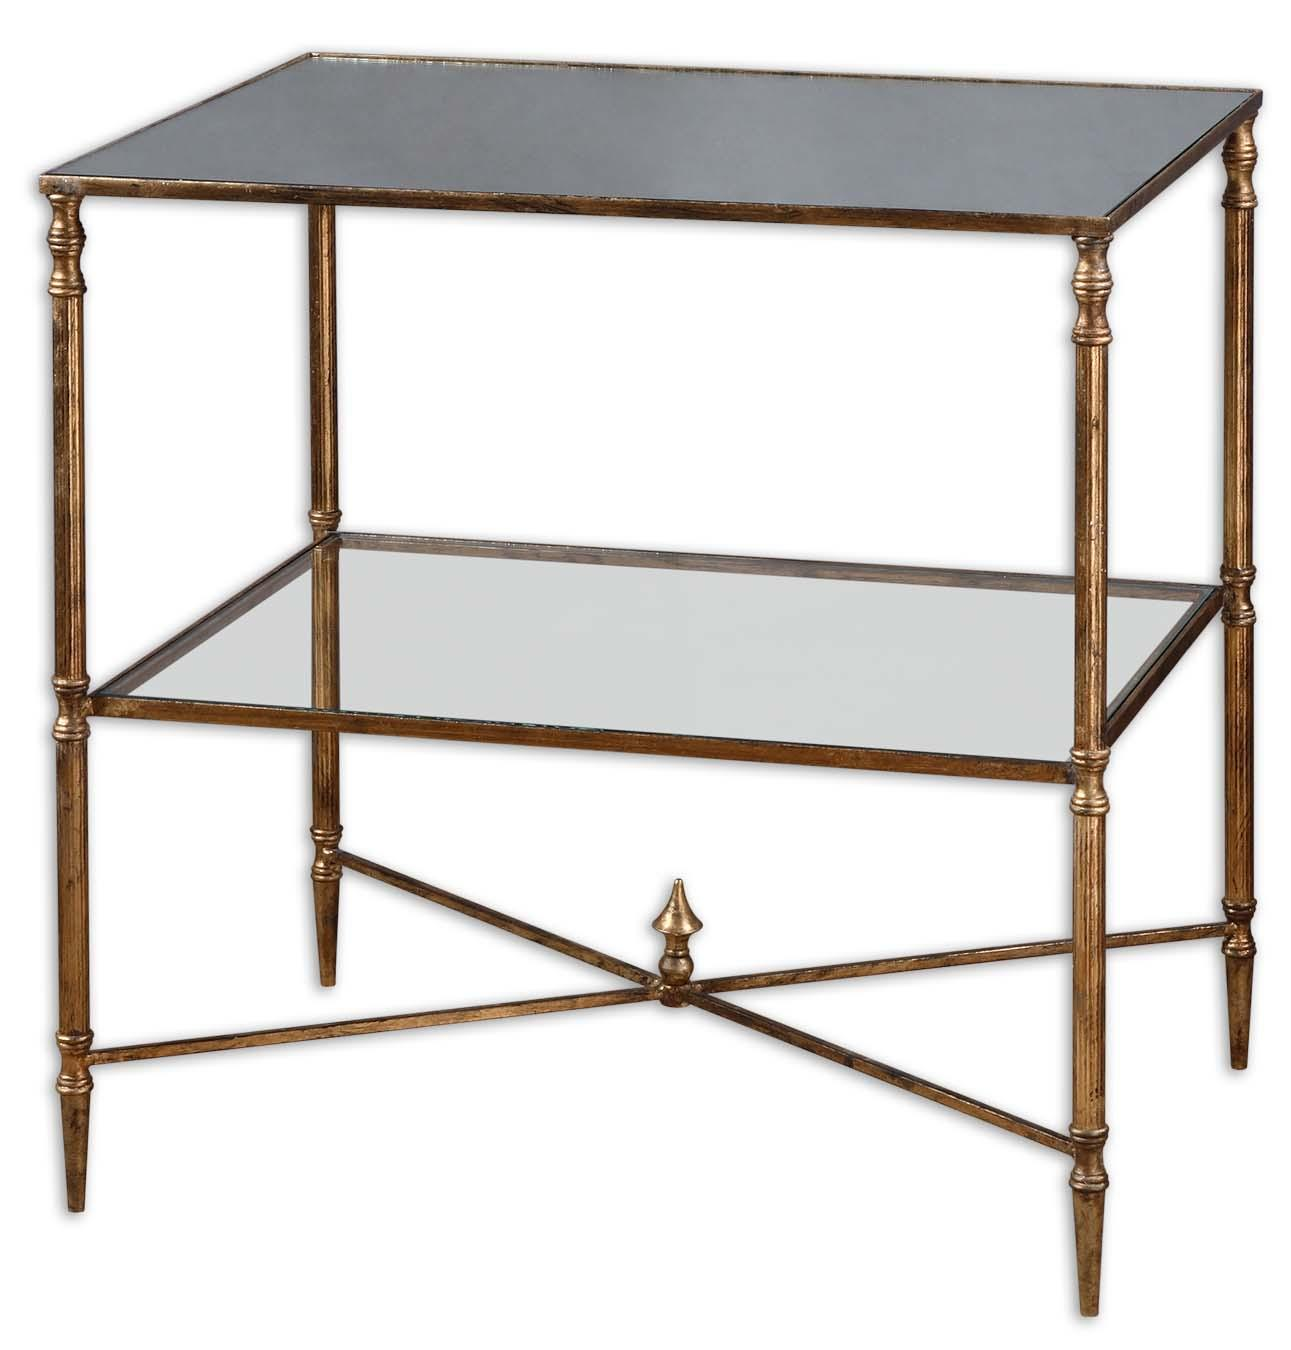 Accent Furniture - Occasional Tables Henzler Lamp Table by Uttermost at Upper Room Home Furnishings